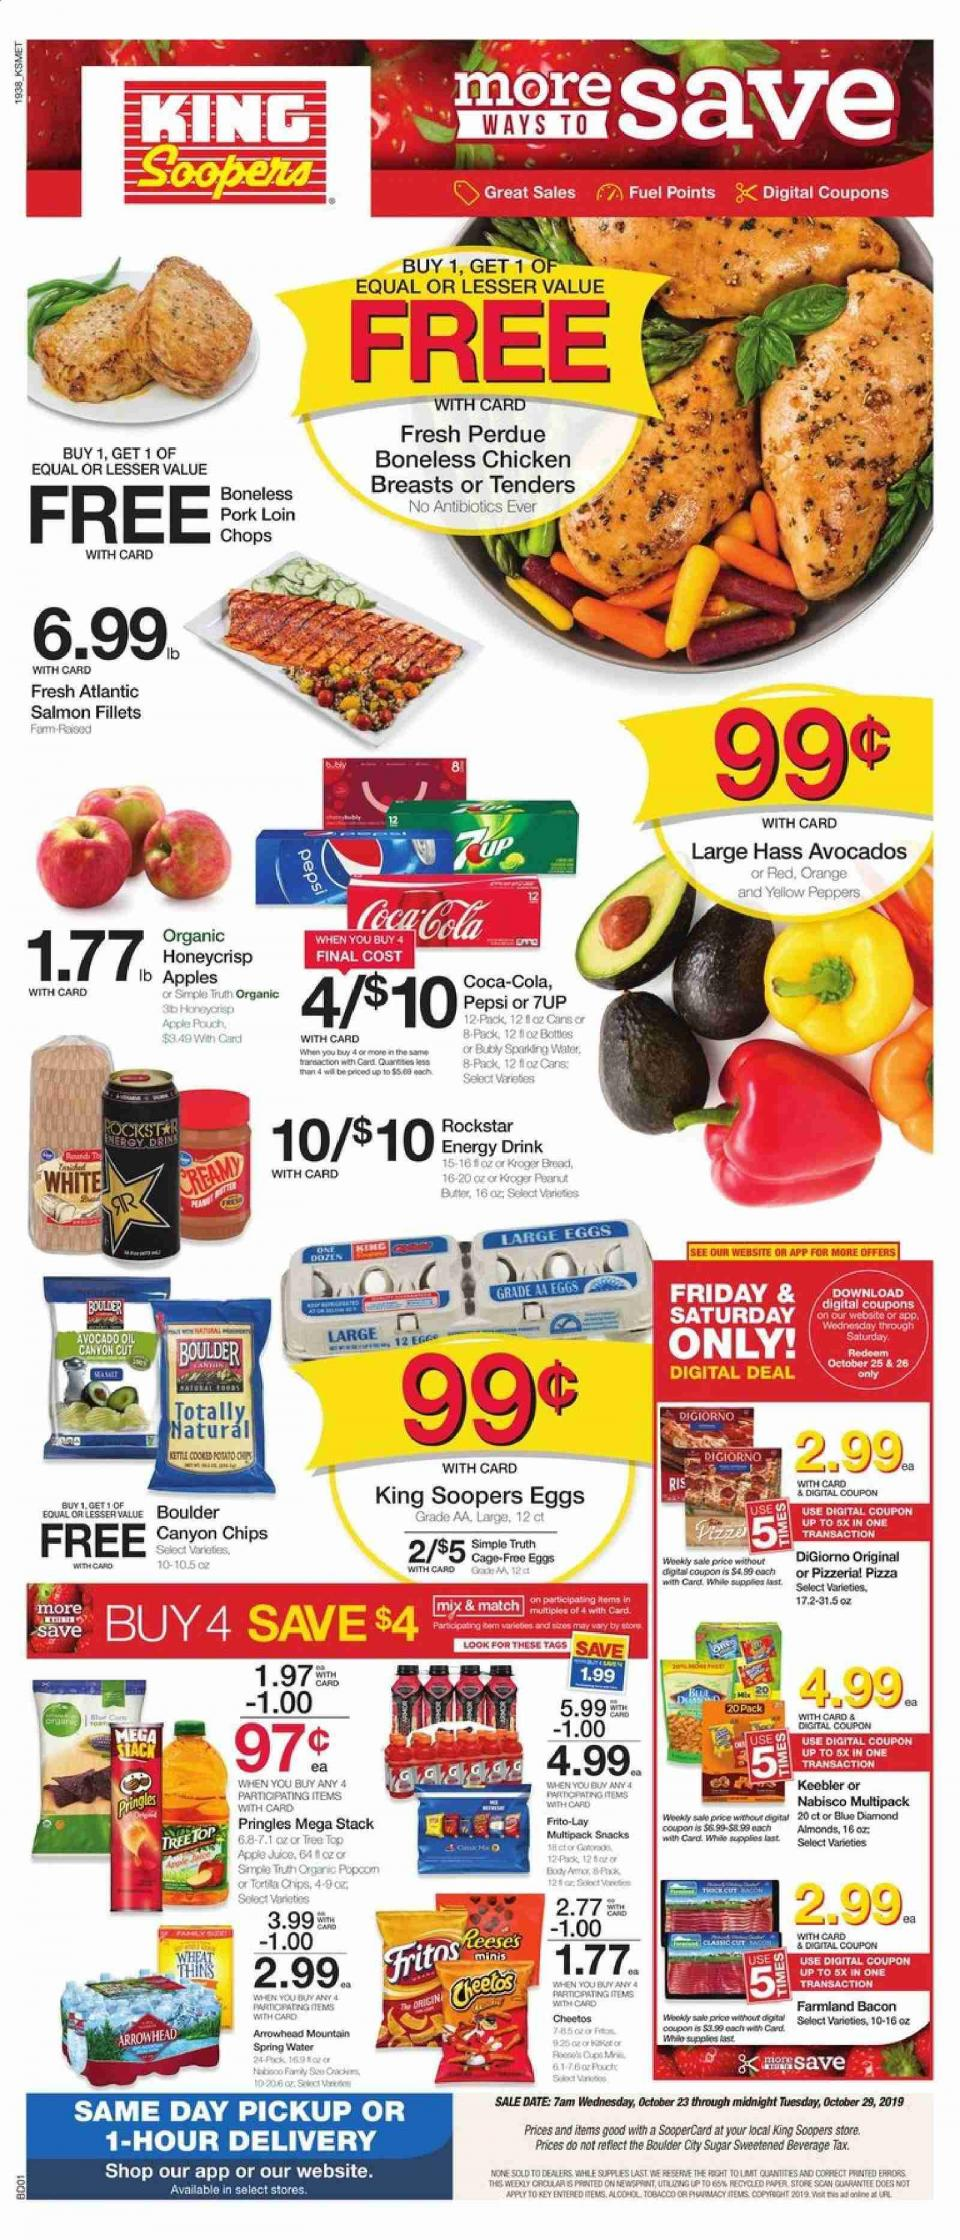 king soopers ad oct 23 29 2019